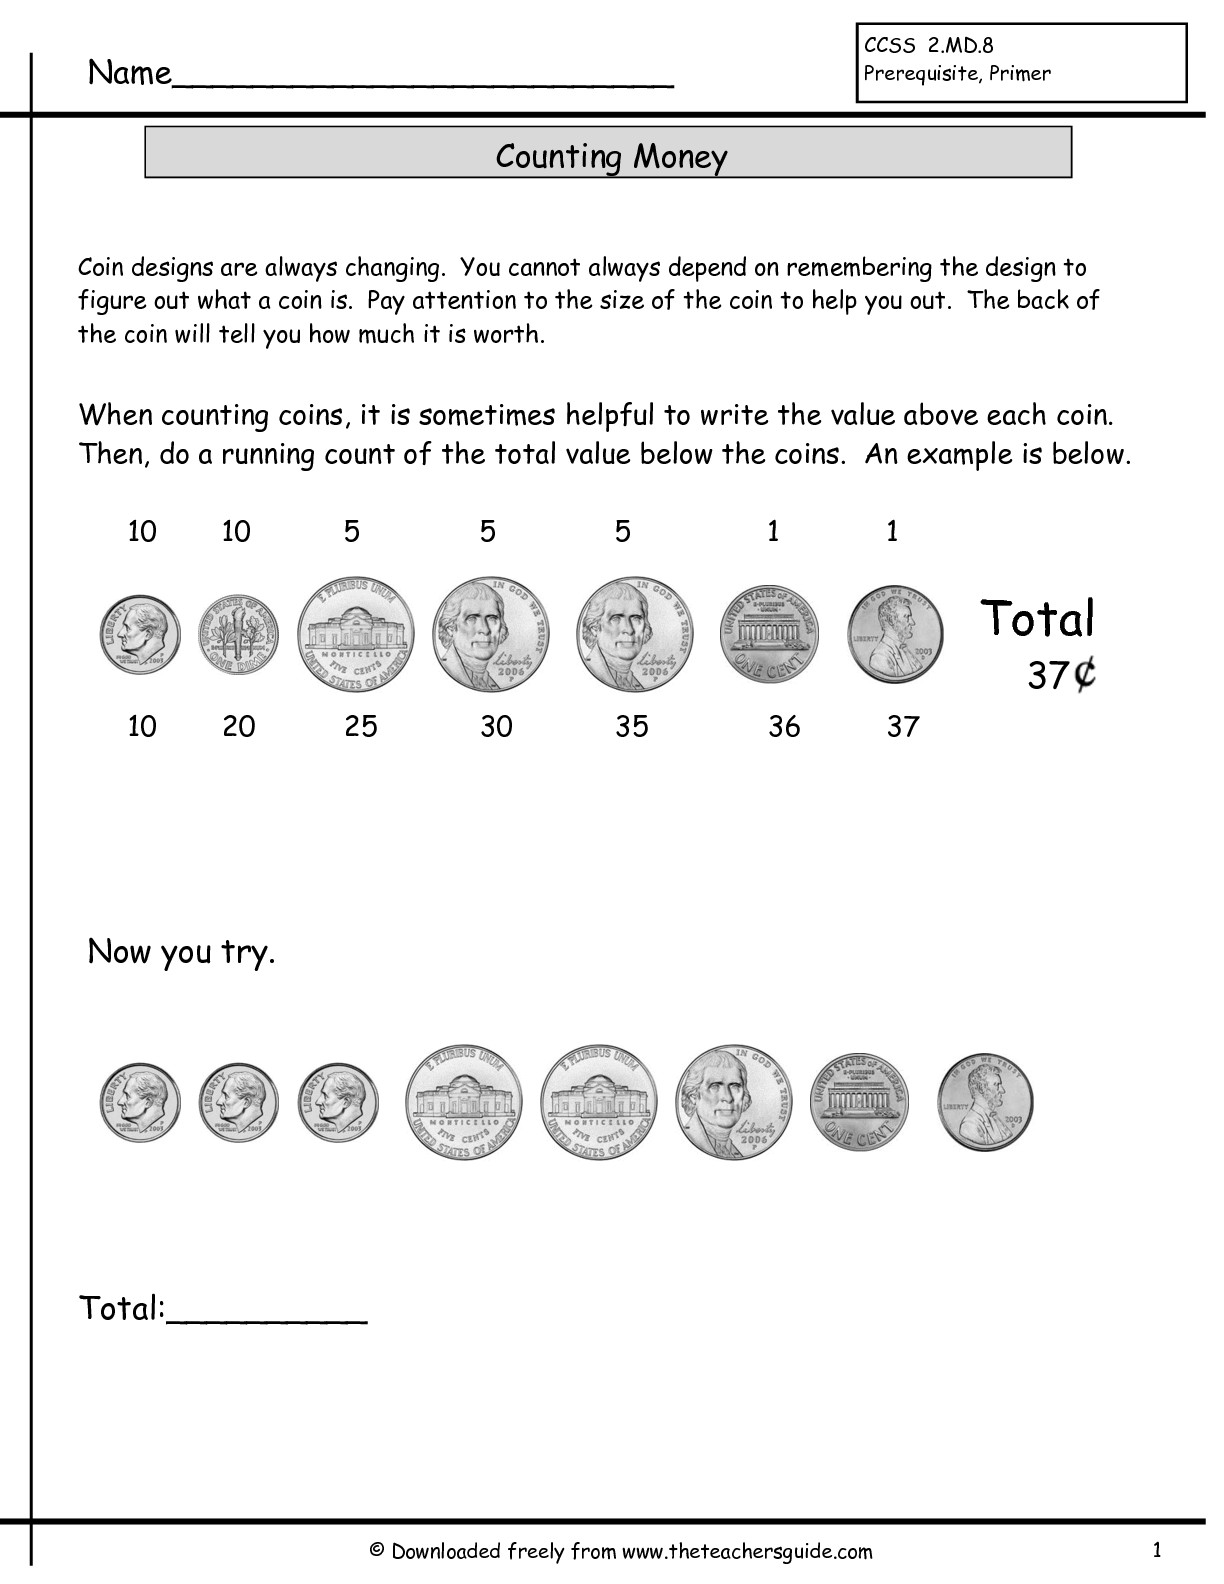 Snk Coin Value Worksheet Answers Oxycontin Brand Names Australia